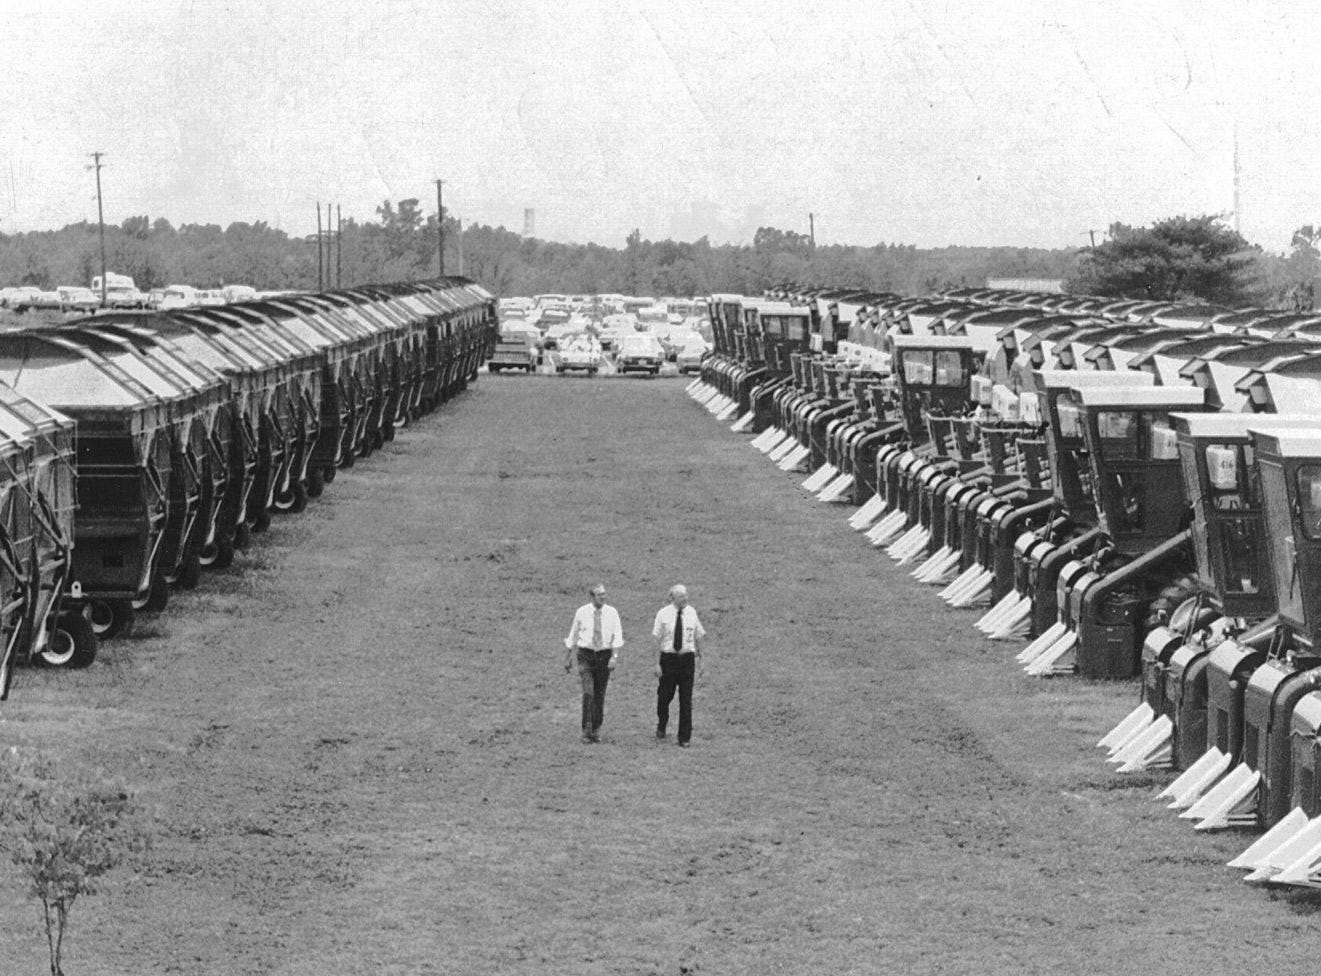 J.R. Massey (Left), public relations manager and R.E. McLure (Right), plant engineer, walk through rows of two-row cotton pickers fresh off the assembly line at International Harvester on 7 May 1975.